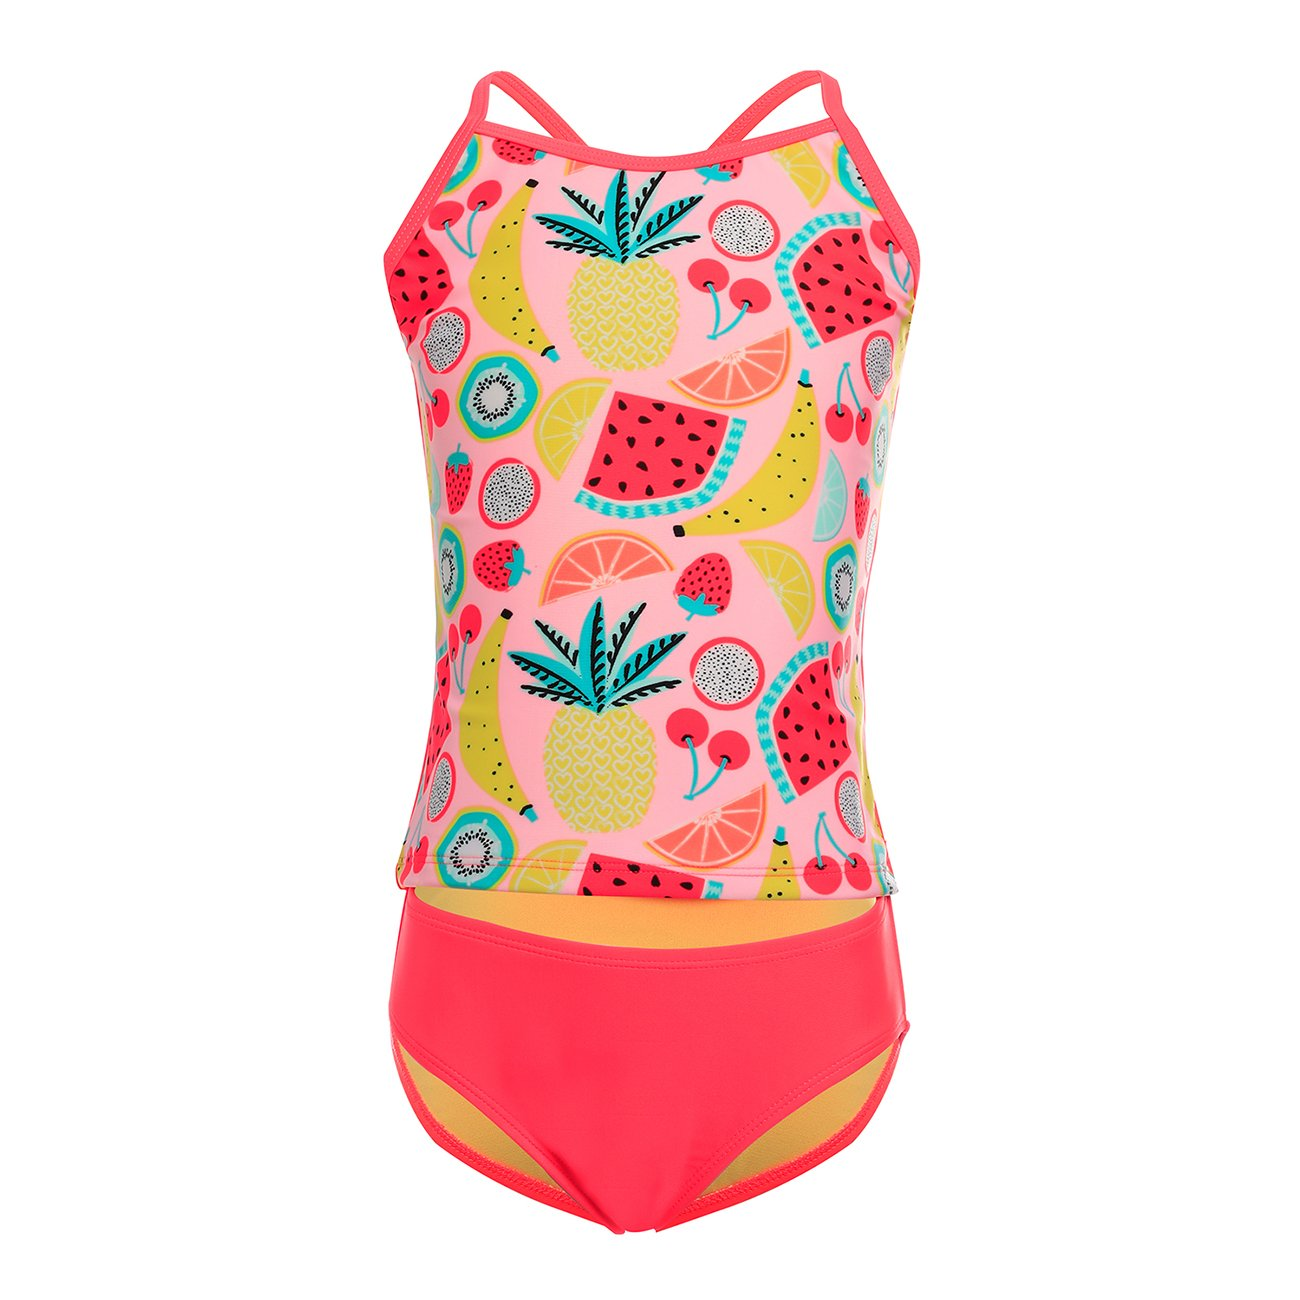 DAYU Girls' Summer Dream Tankini Two Piece Swimsuit